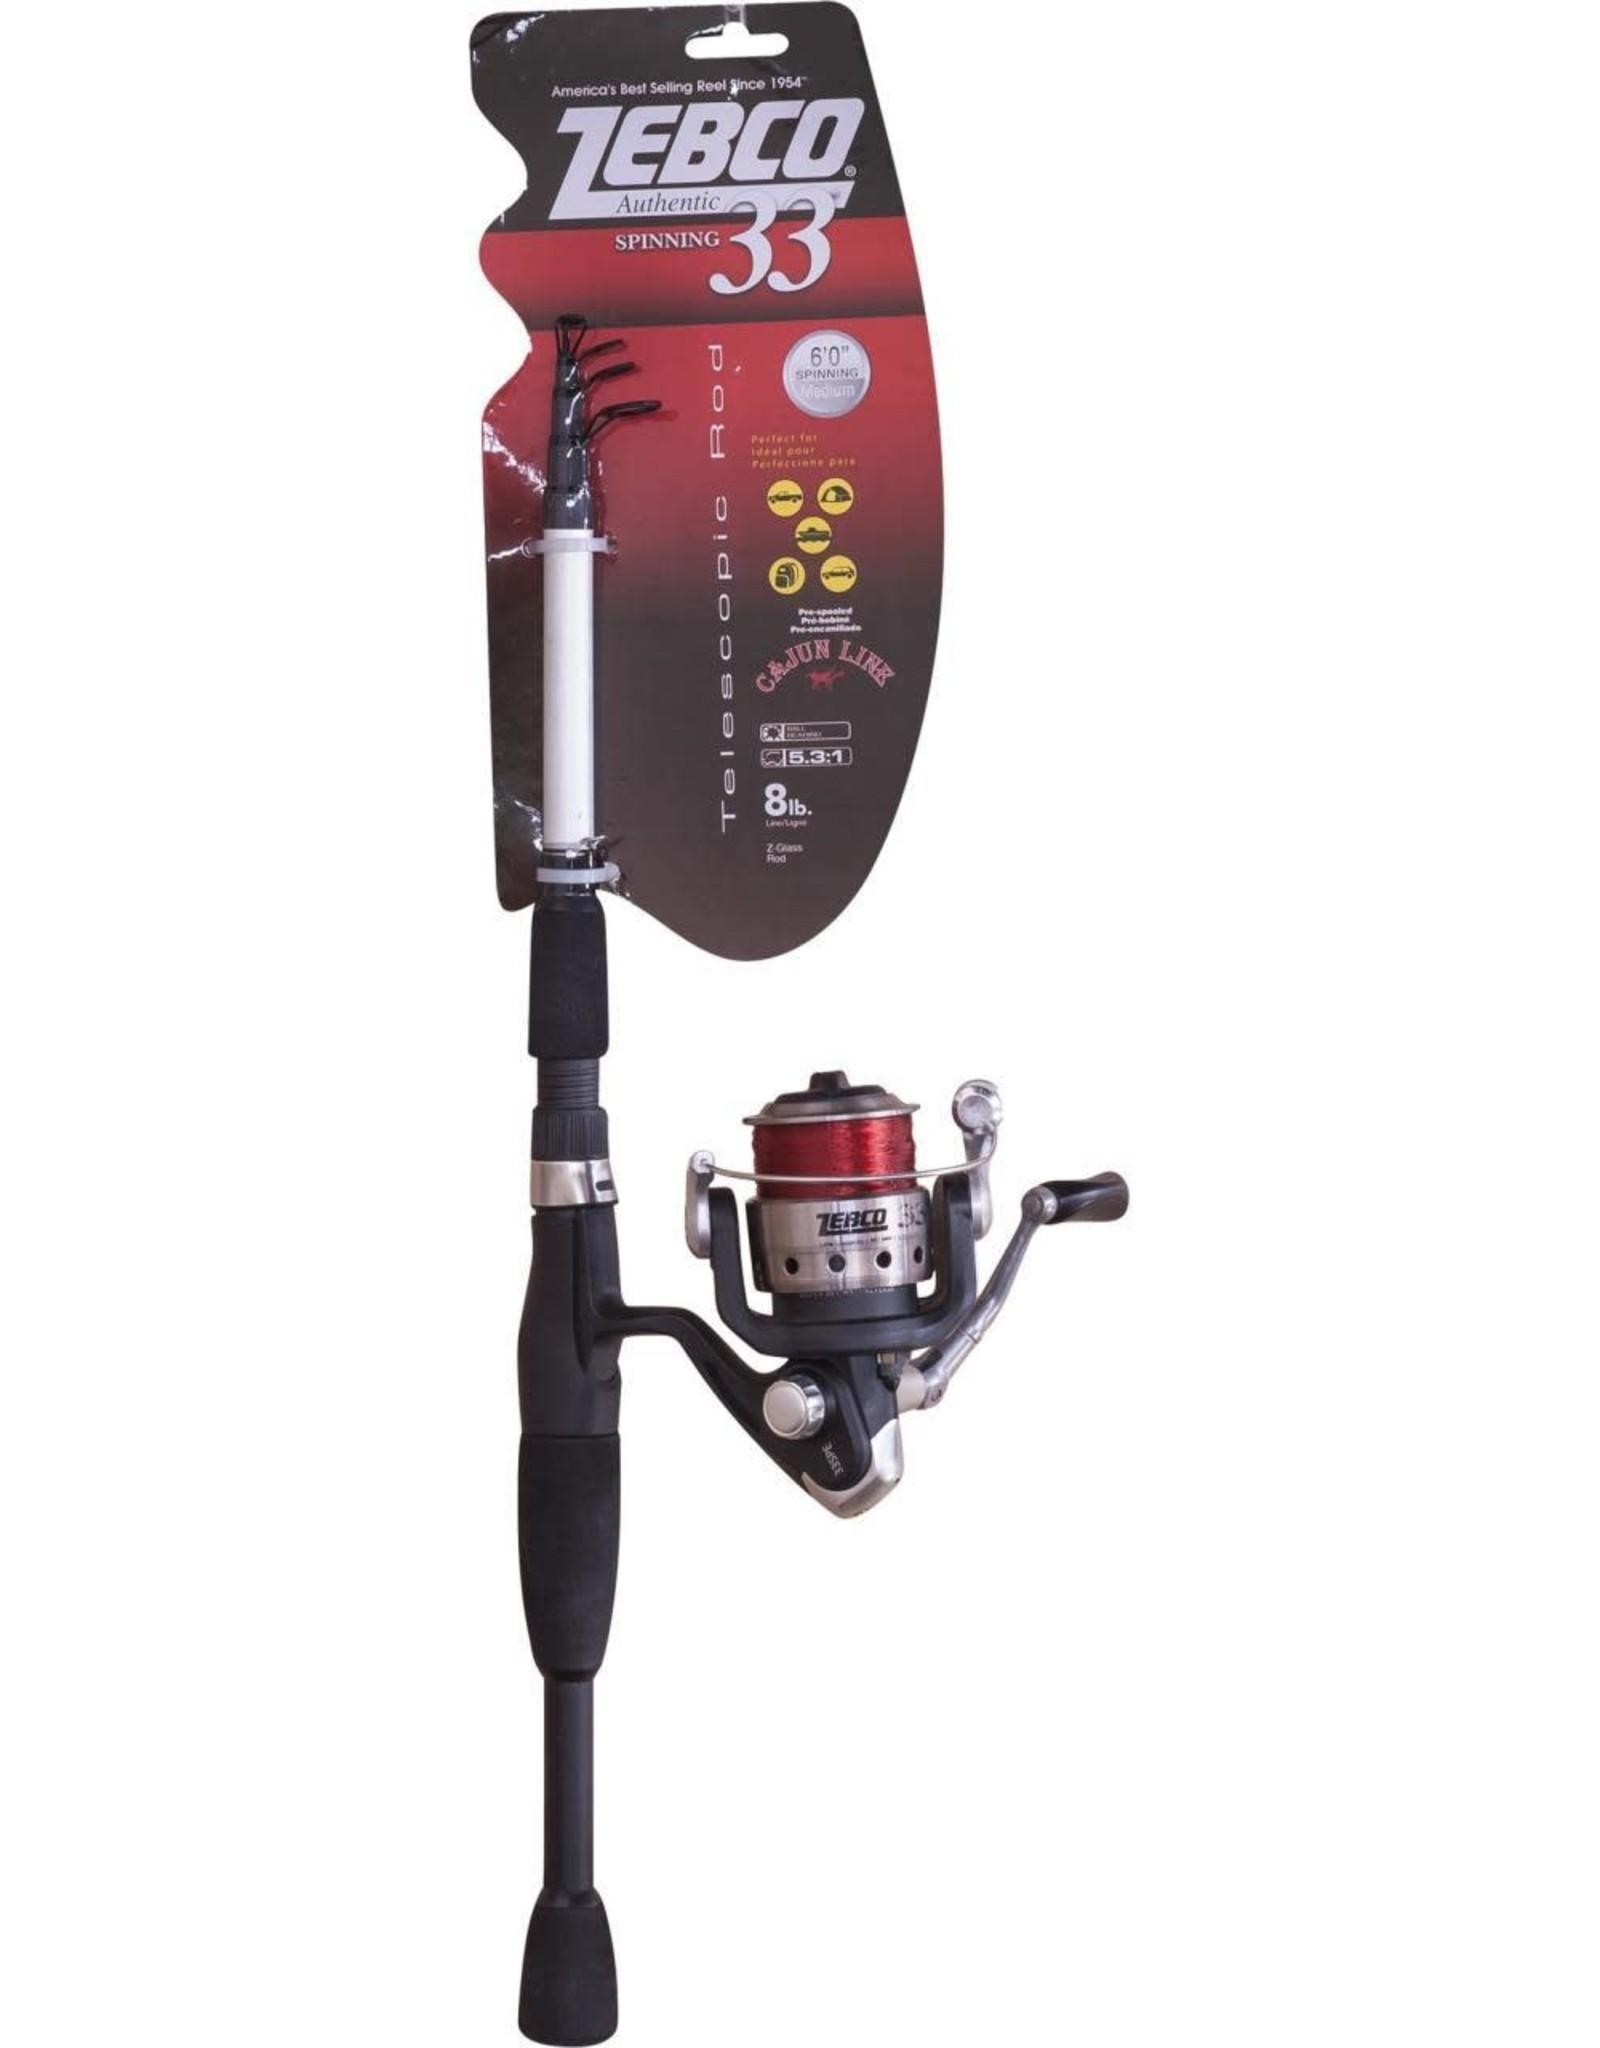 Zebco 33 Telescopic Combo 6' Medium